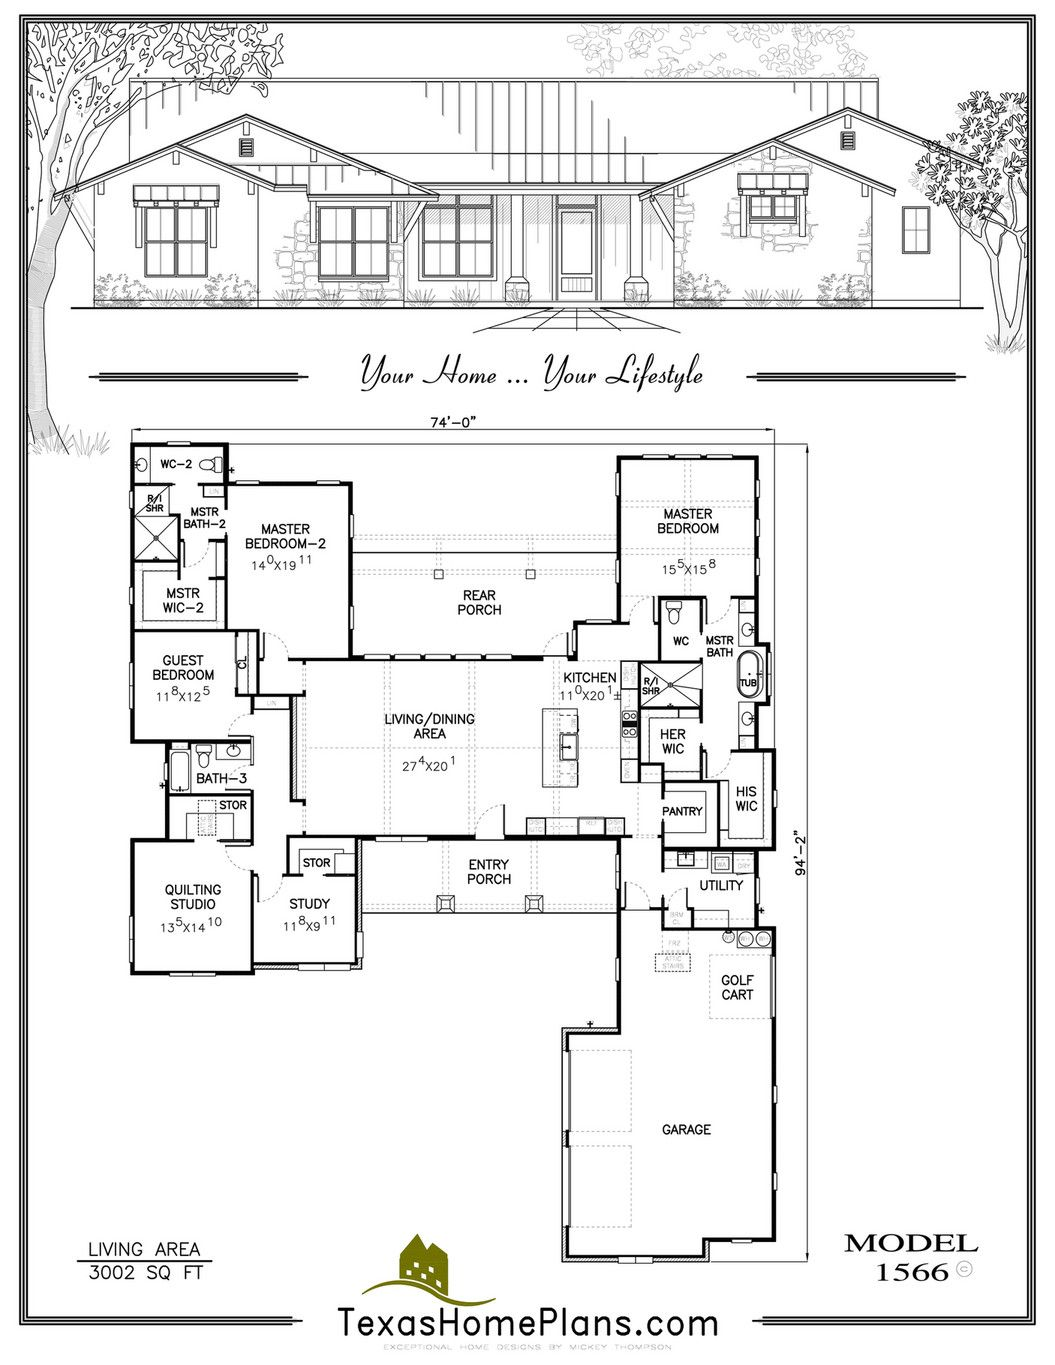 Texas Home Plans Texas Farm Homes Page 150 151 House Plans Vintage House Plans Texas Style Homes